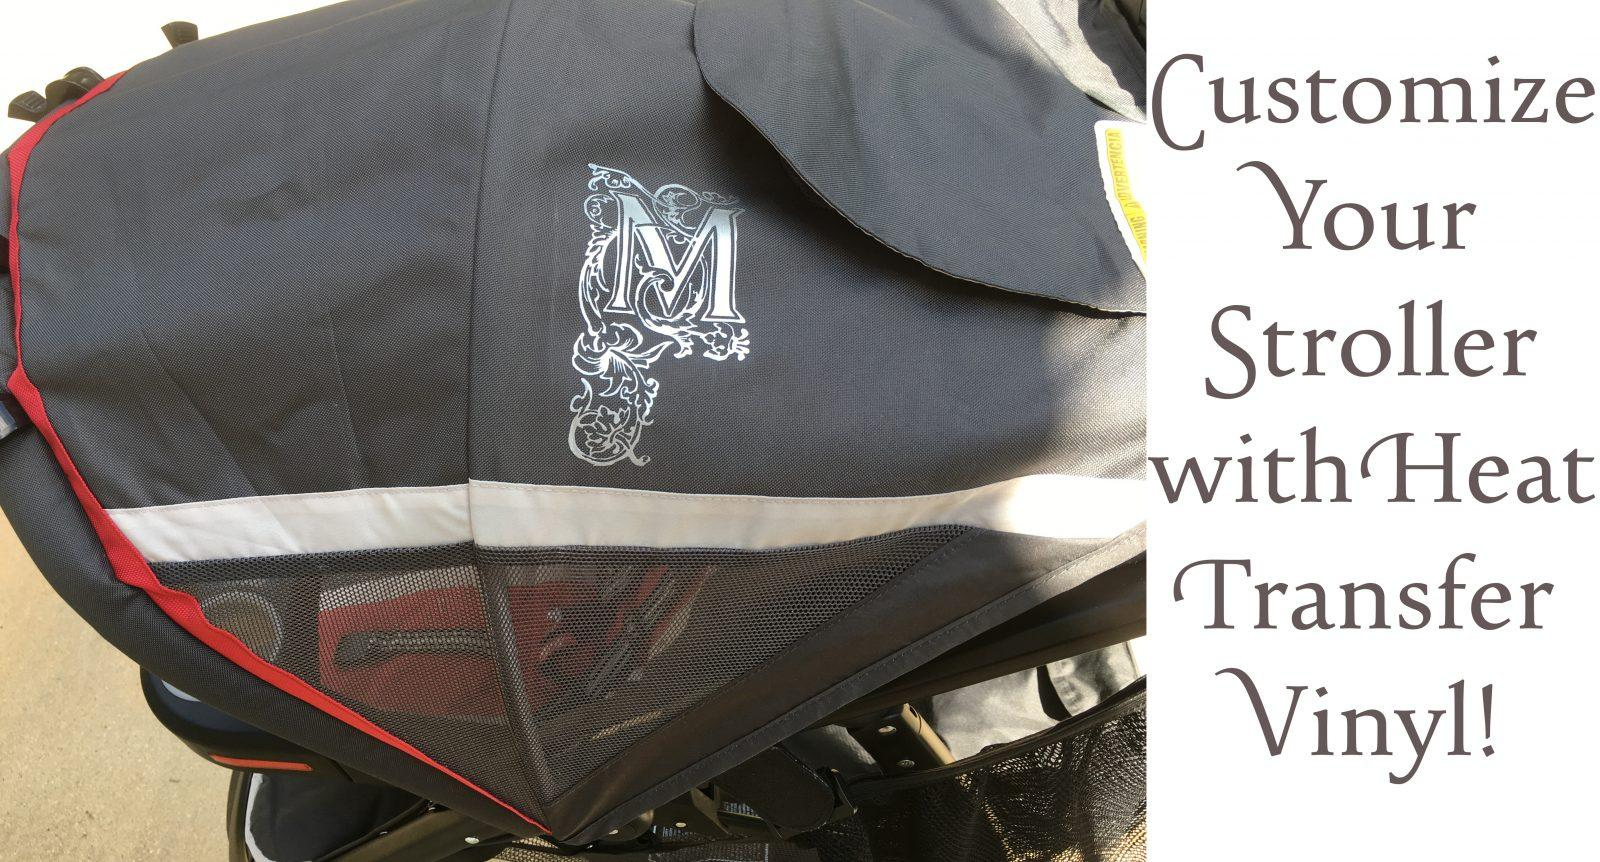 Customizing a Stroller with Cricut or Silhouette